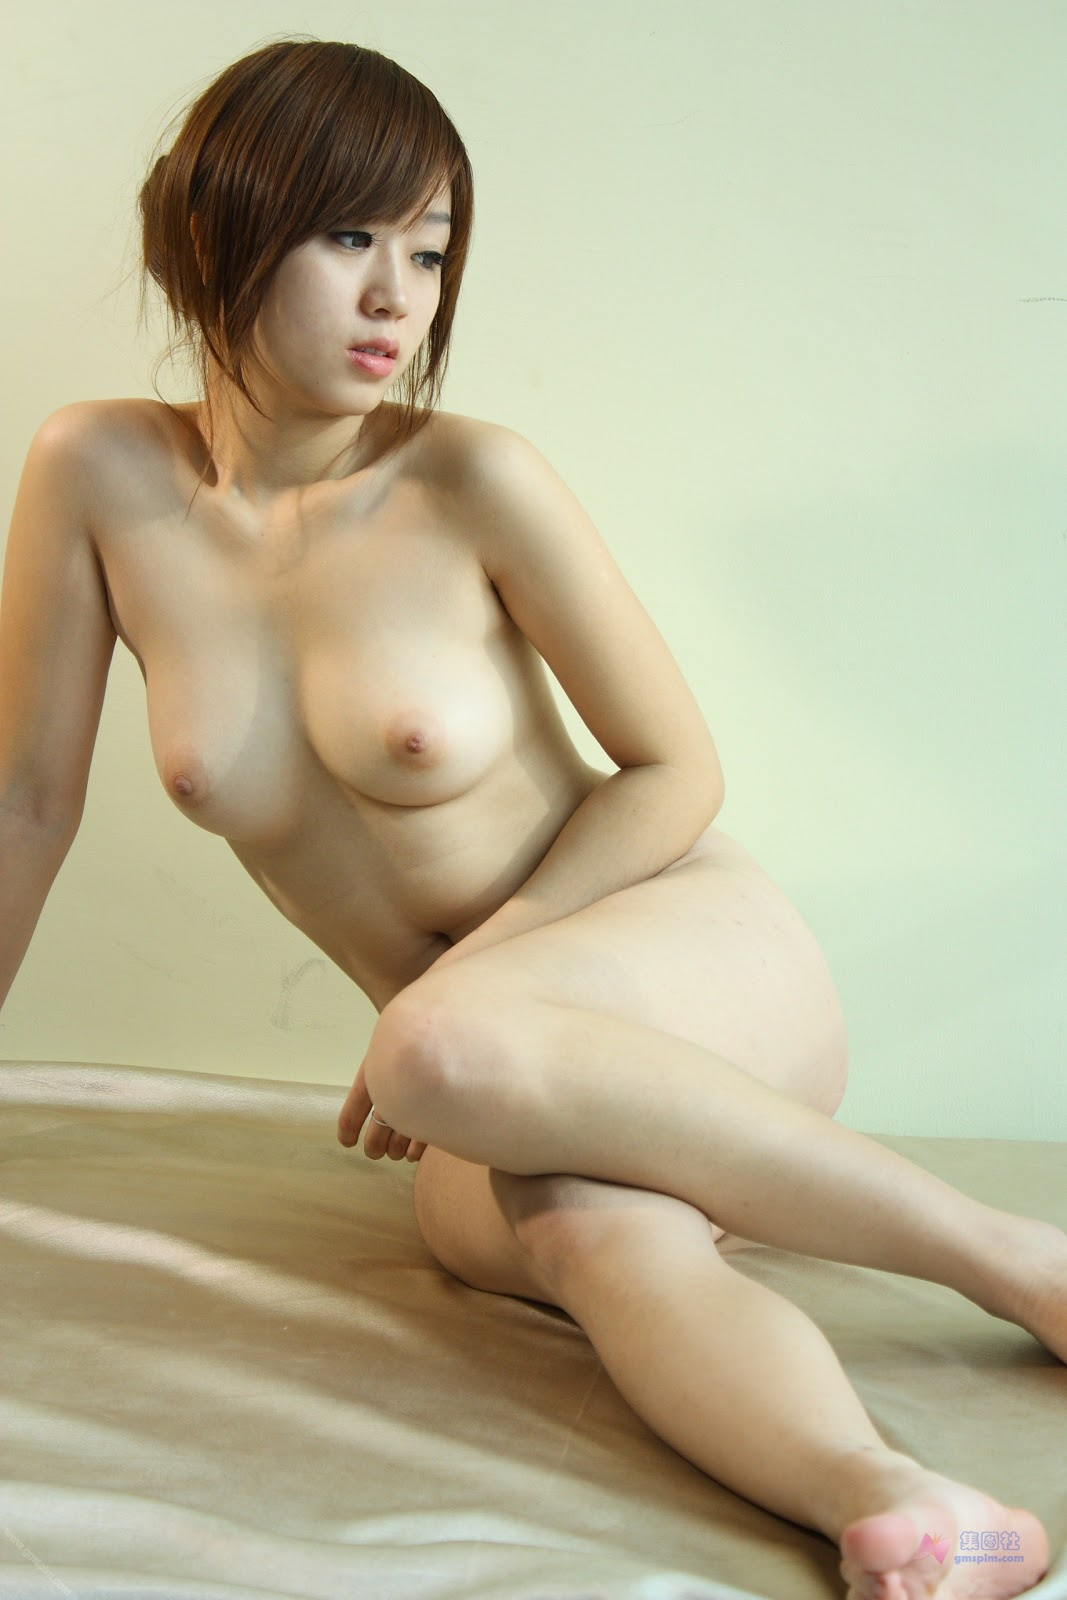 Excellent message, Teenage south korean babes tits